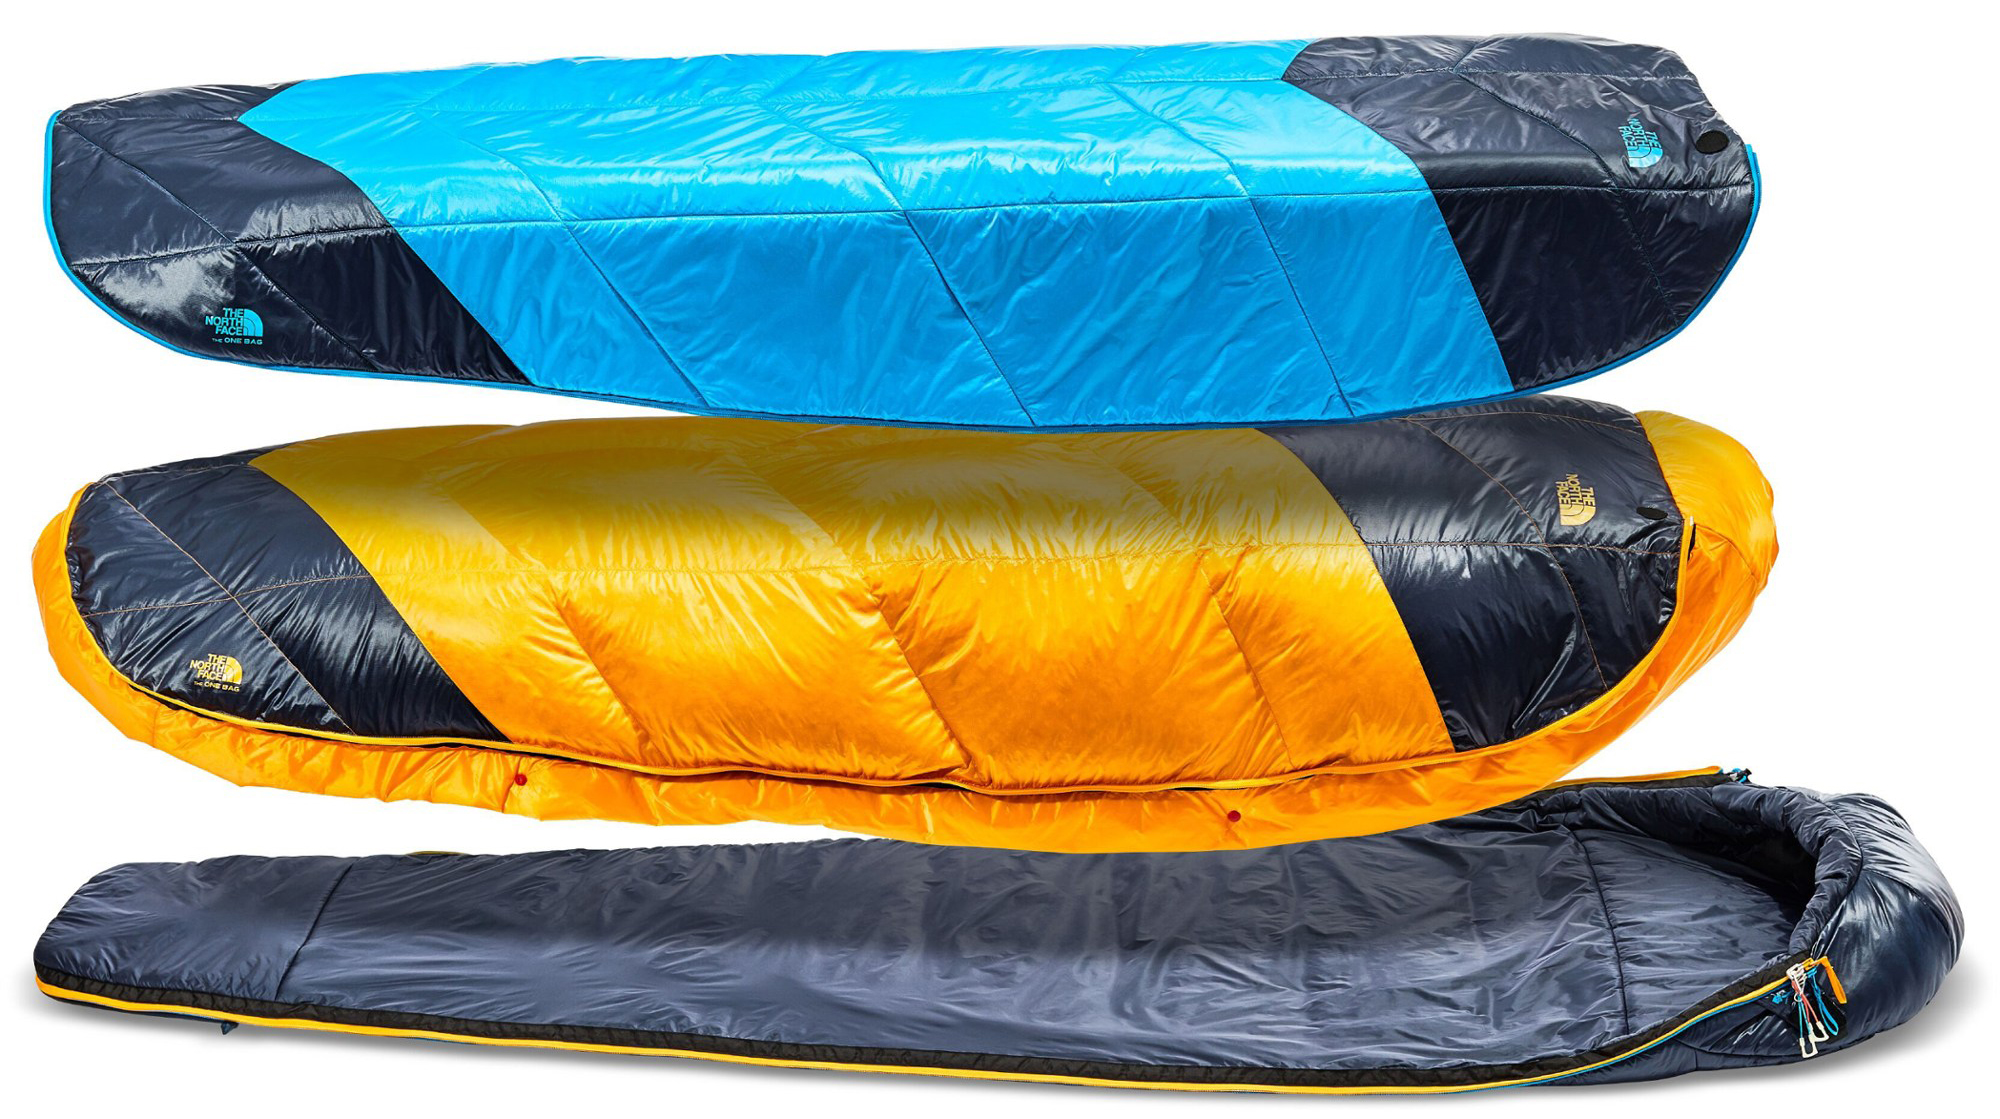 The North Face The One sleeping bag